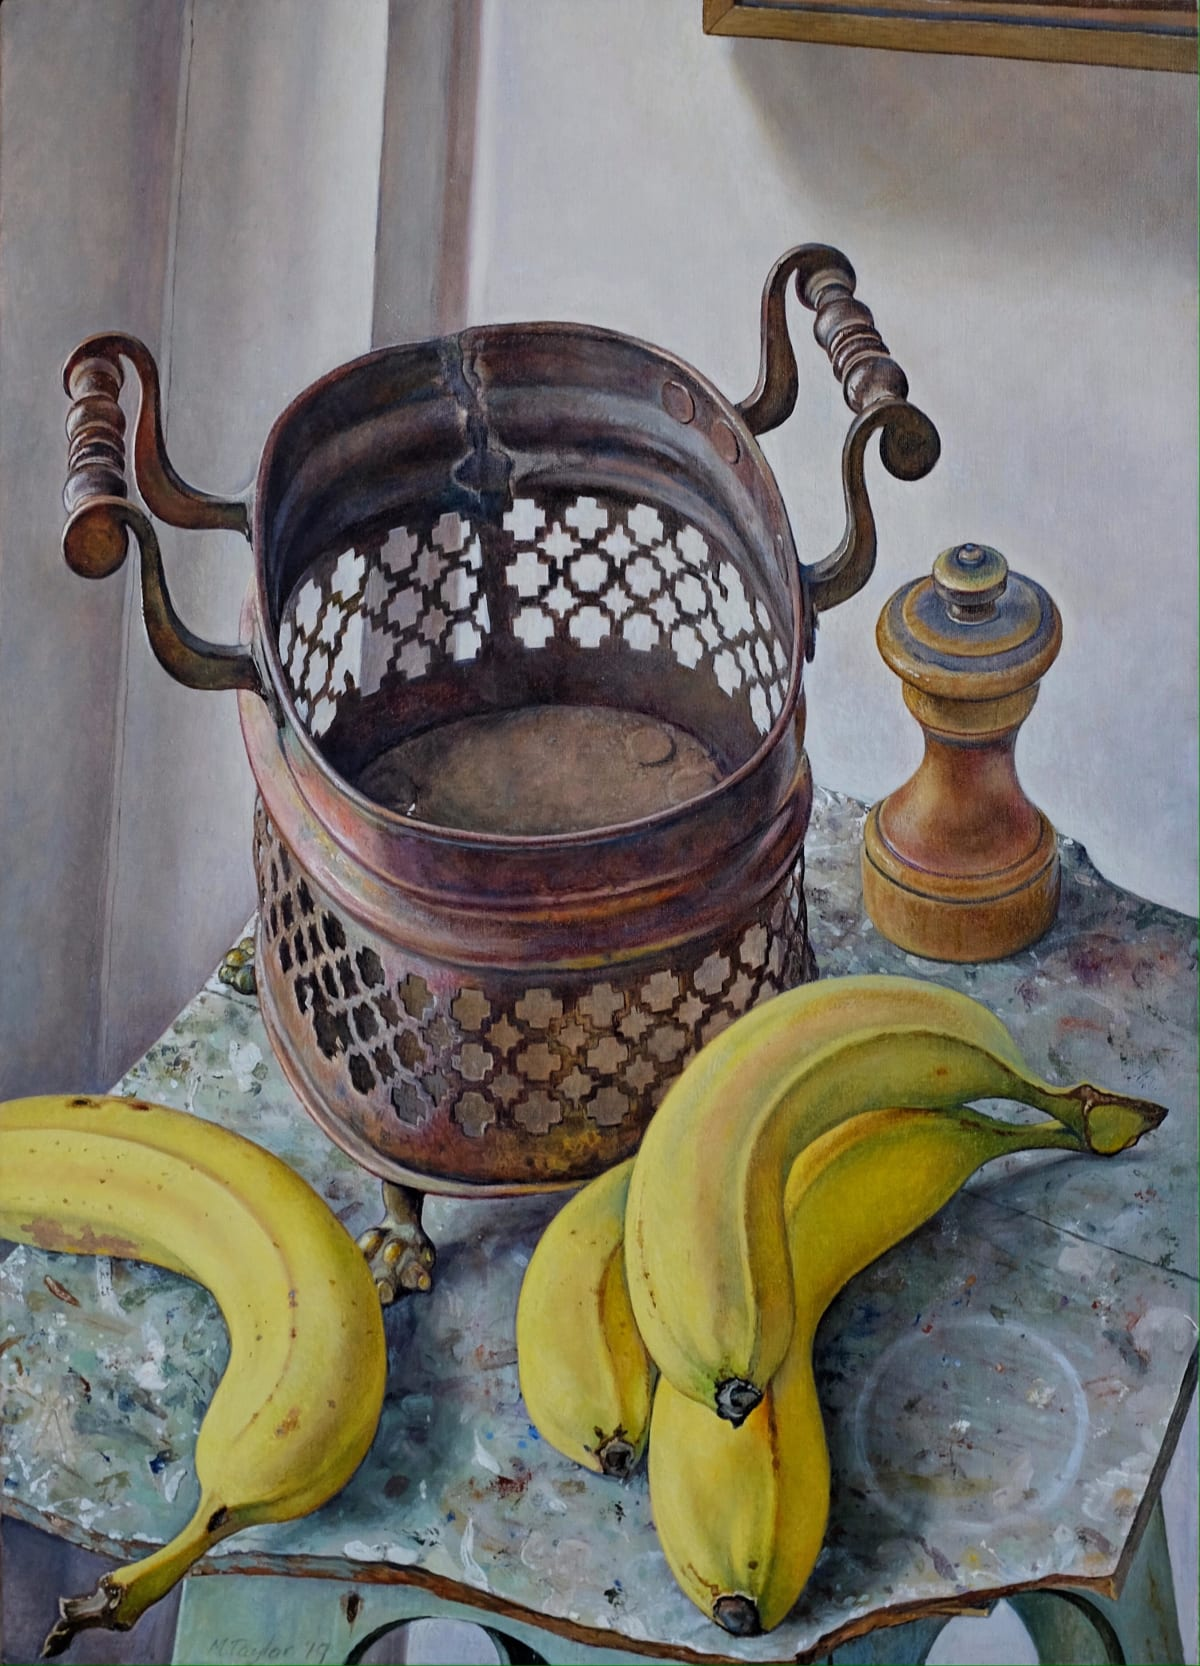 Michael Taylor, Copper Basket with Fruit